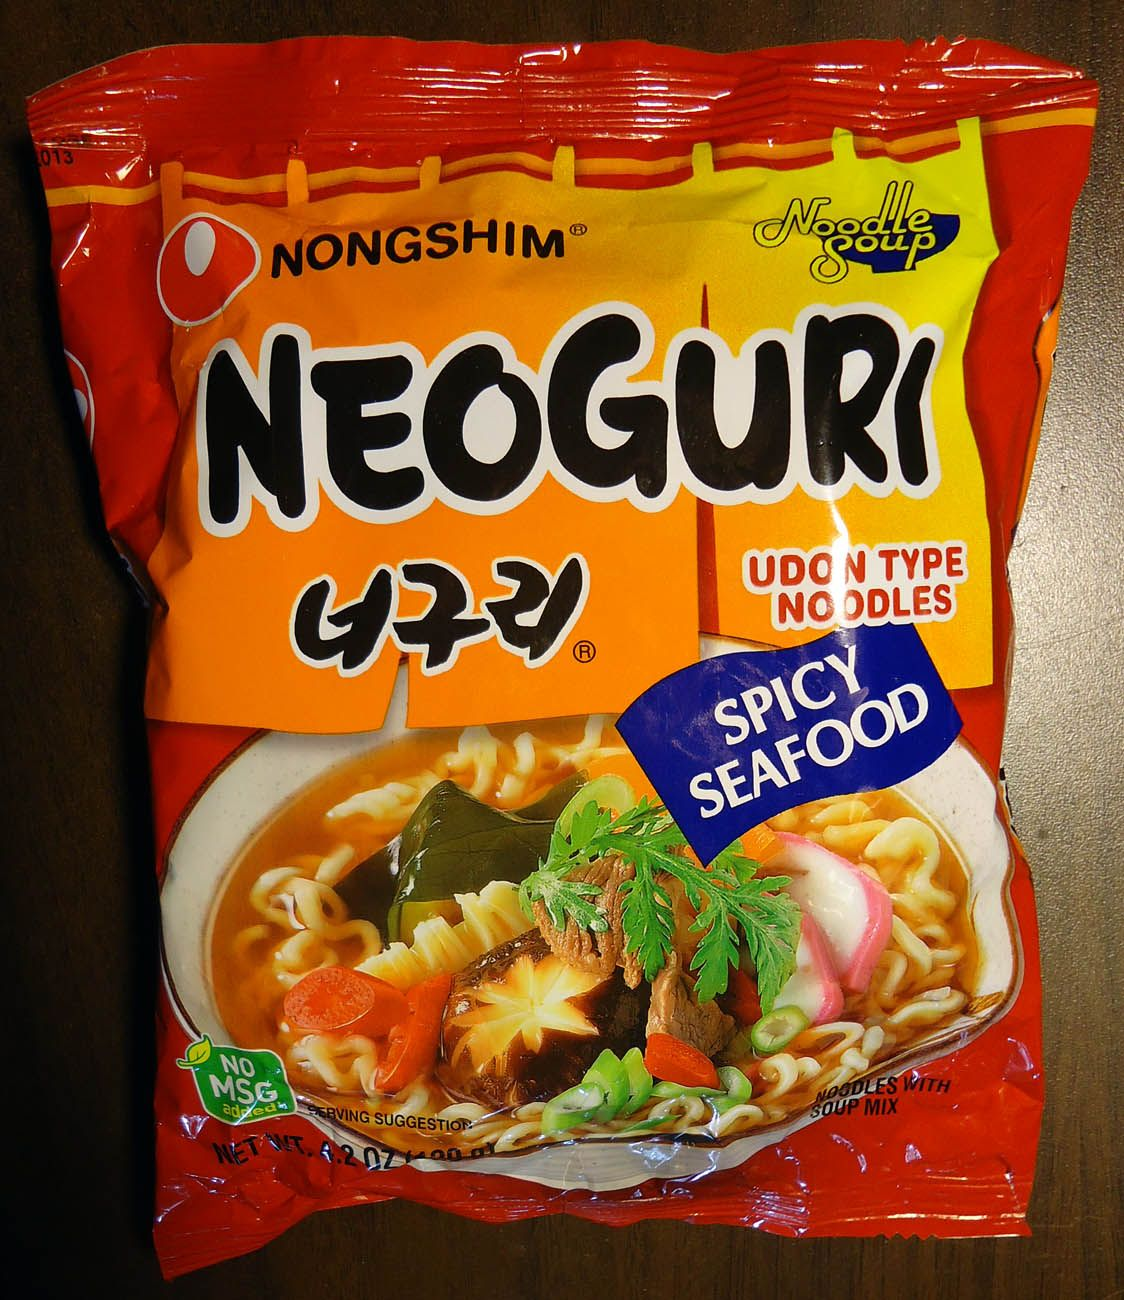 re review meet the manufacturer nongshim neoguri spicy seafood udon type noodles recipes harvest recipes savoury food recipes harvest recipes